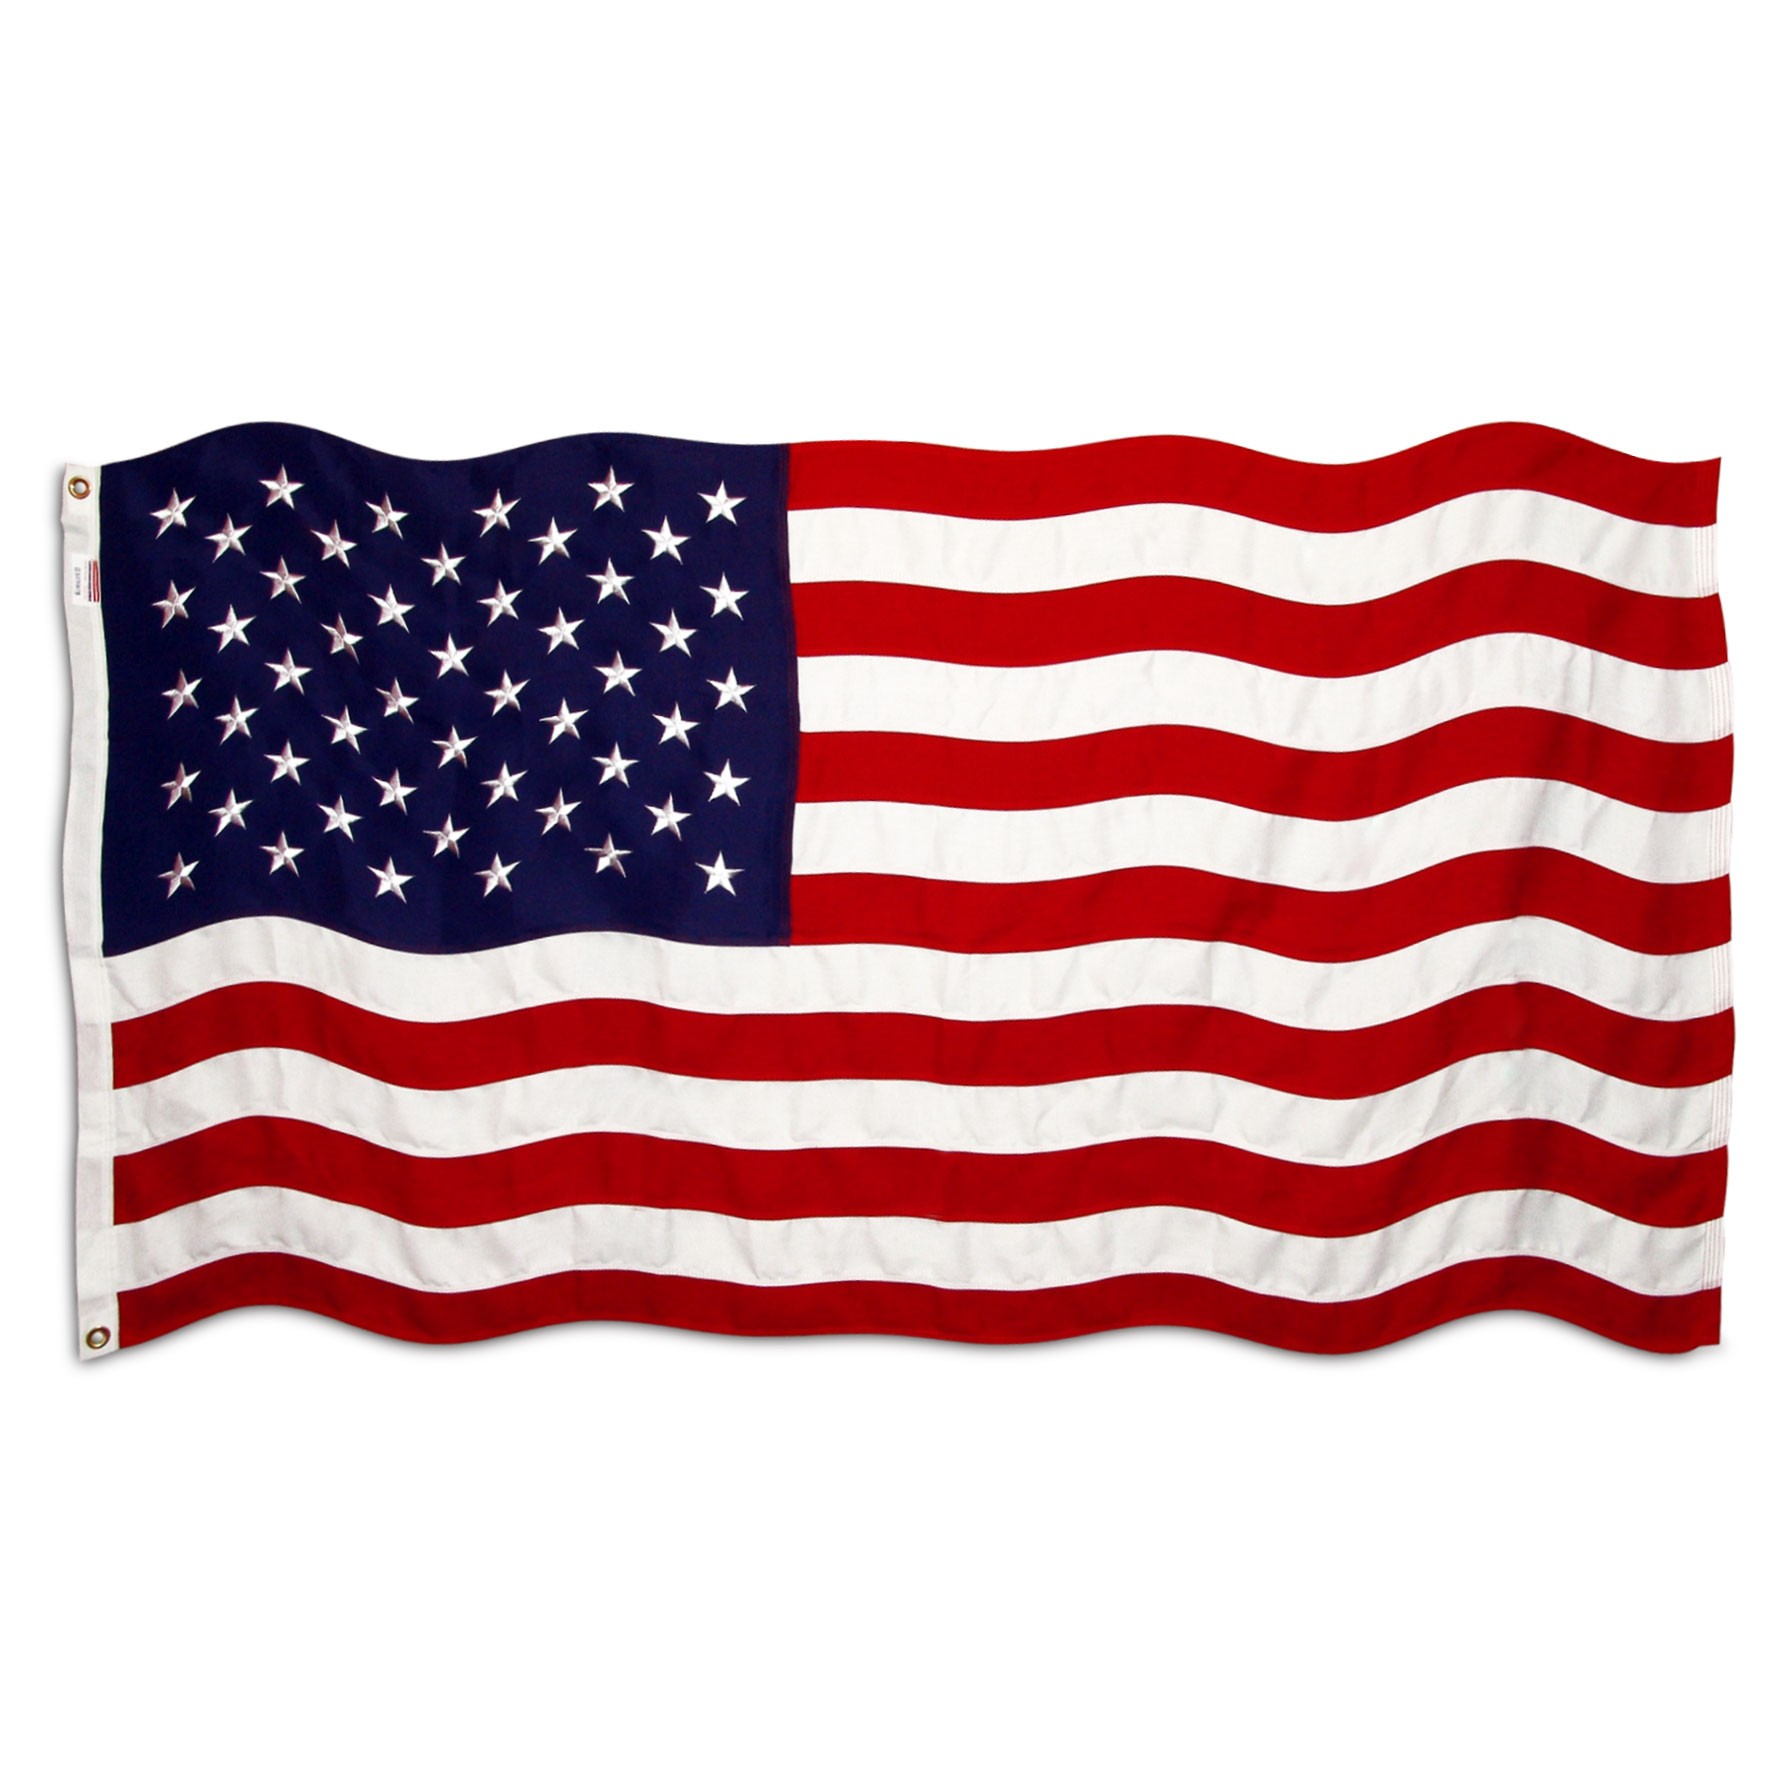 American flag clipart 3